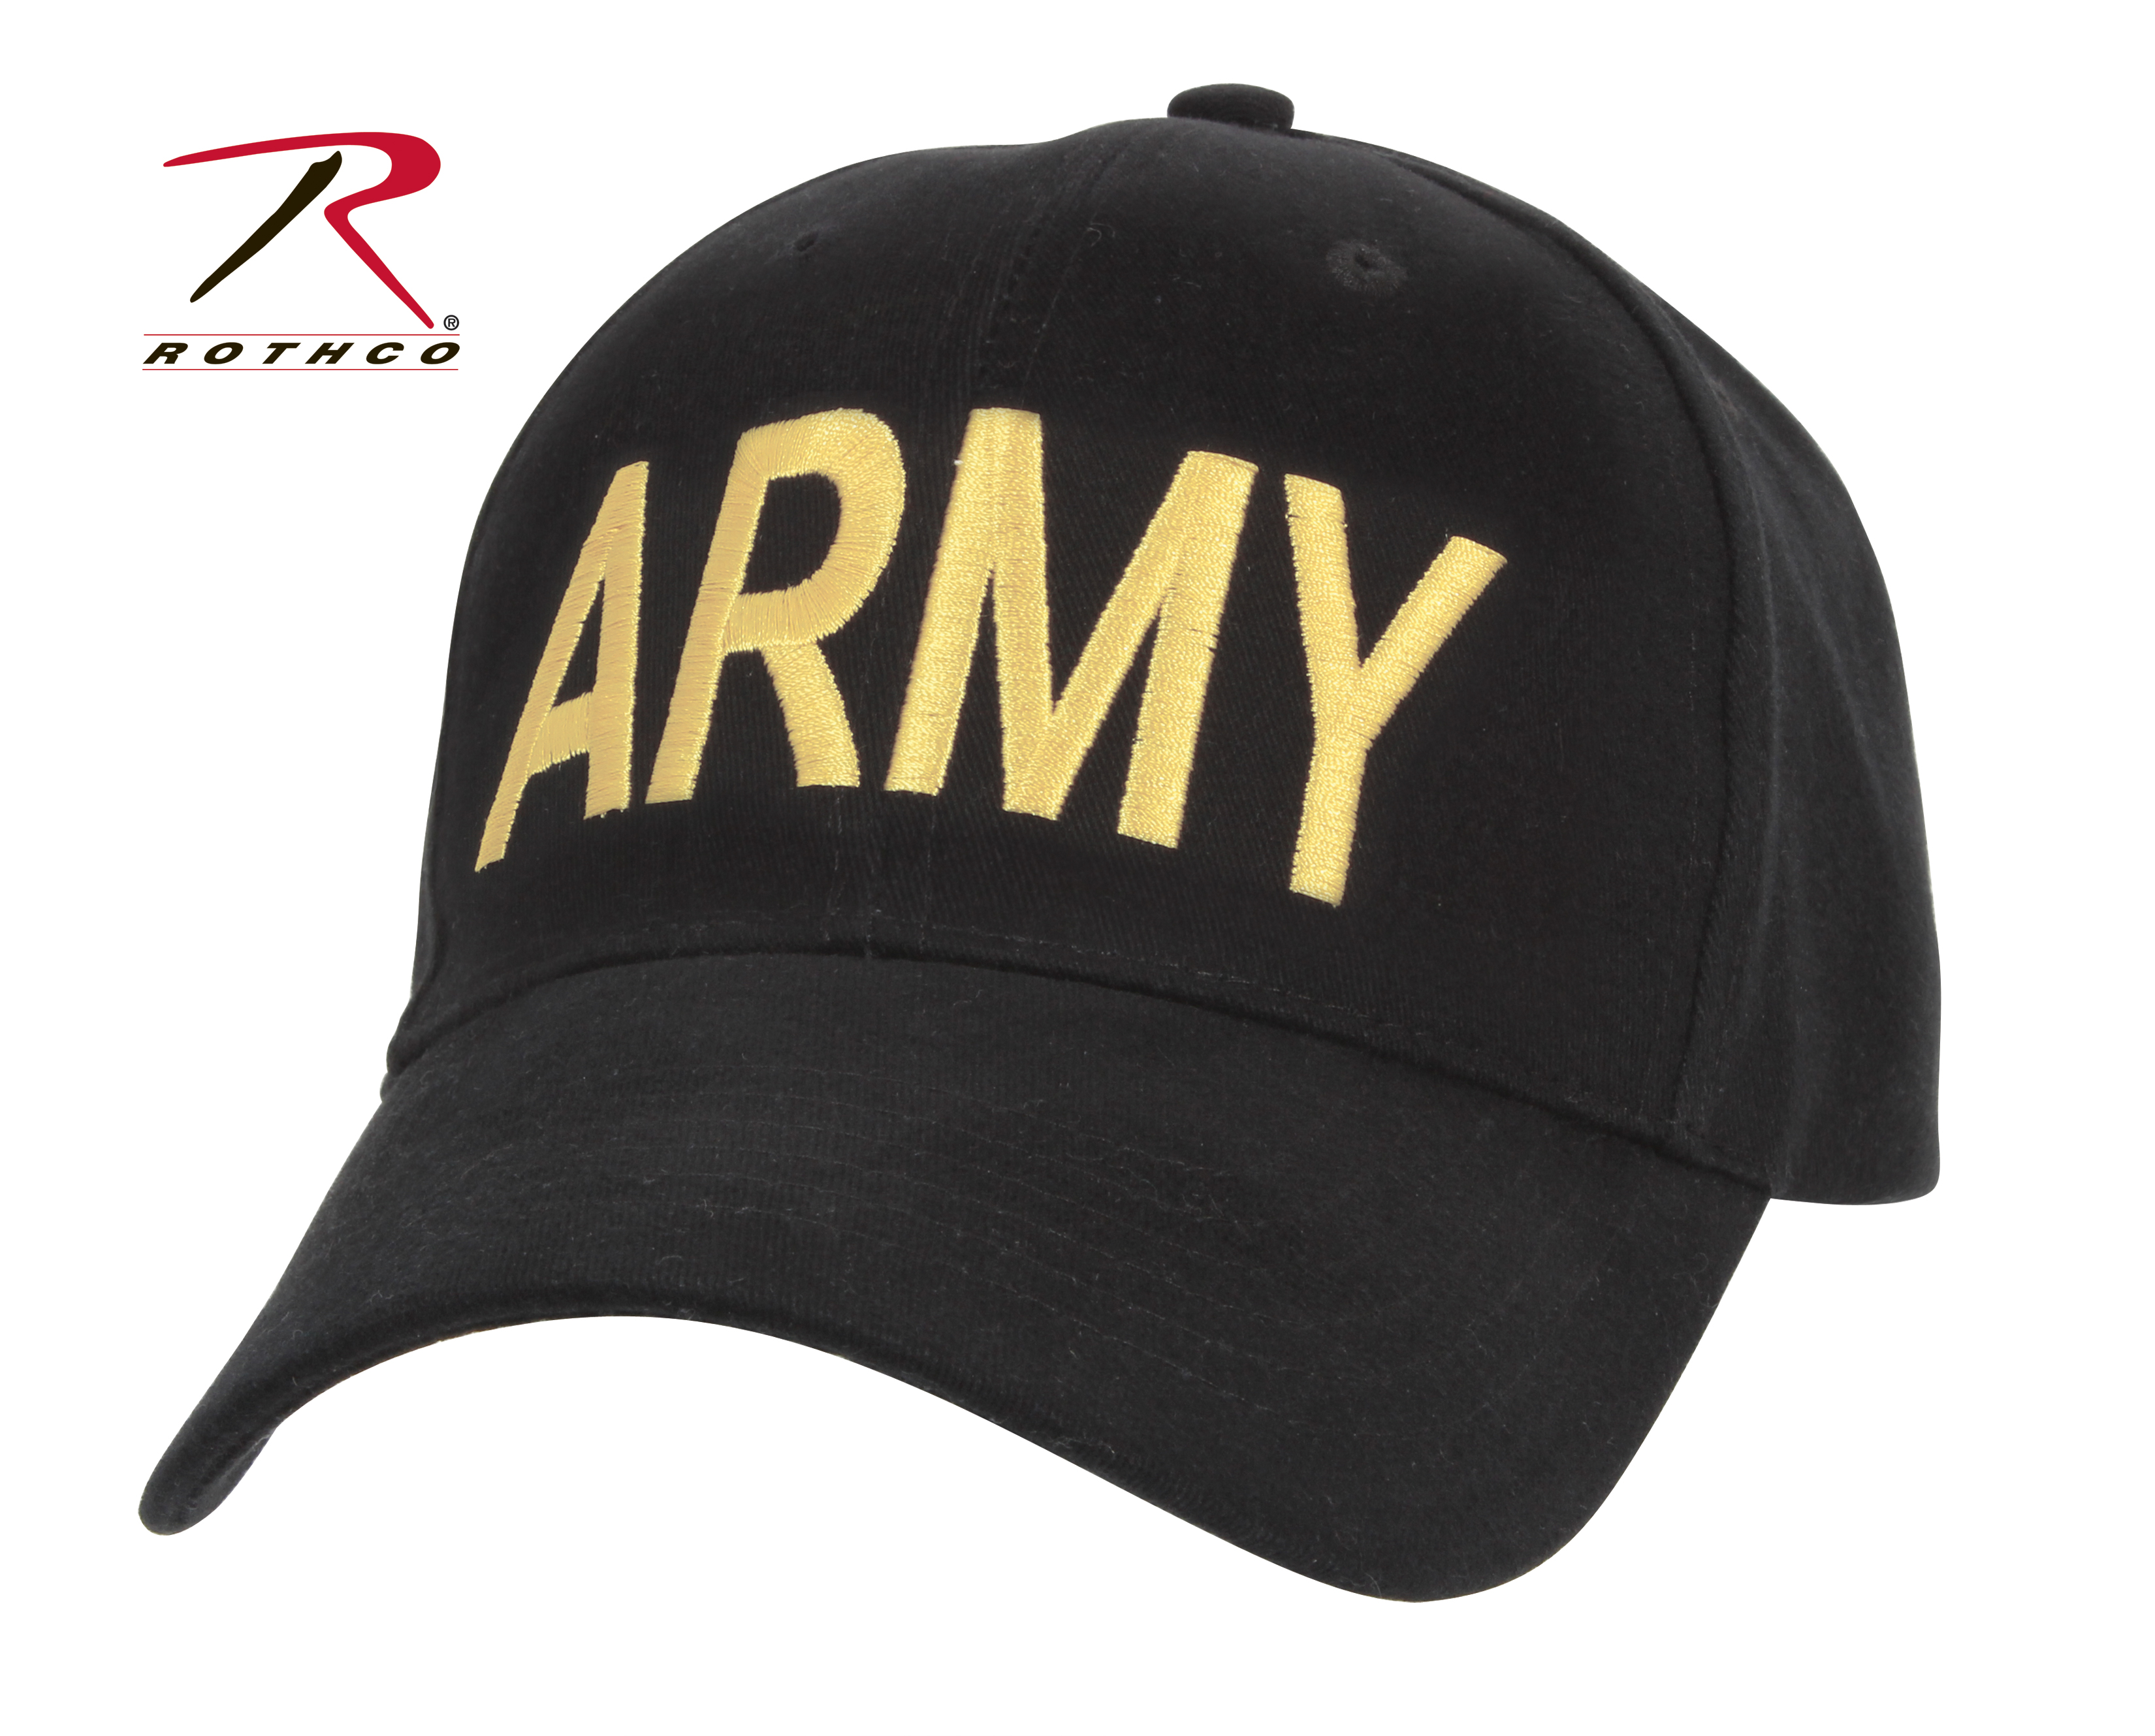 45d63b2c401 Rothco Army Supreme Low Profile Cap